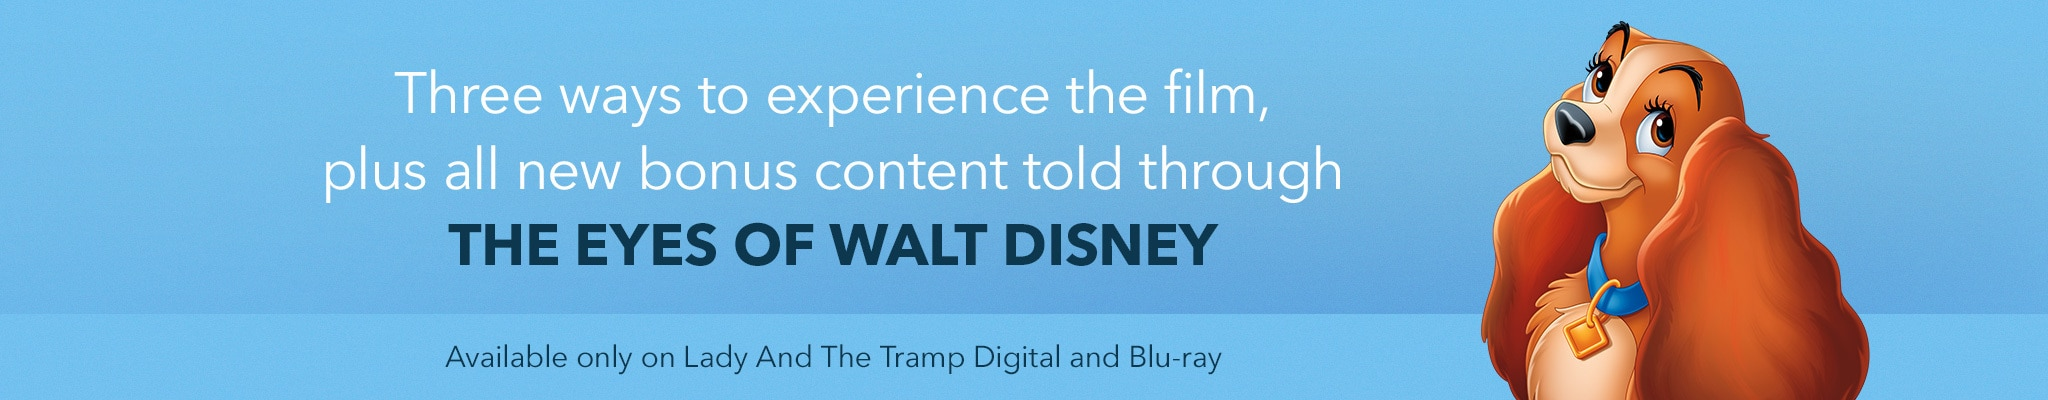 Three ways to experience the film, plus all-new bonus content told through the eyes of Walt Disney. Available only on Lady and the Tramp Digial and Blu-ray